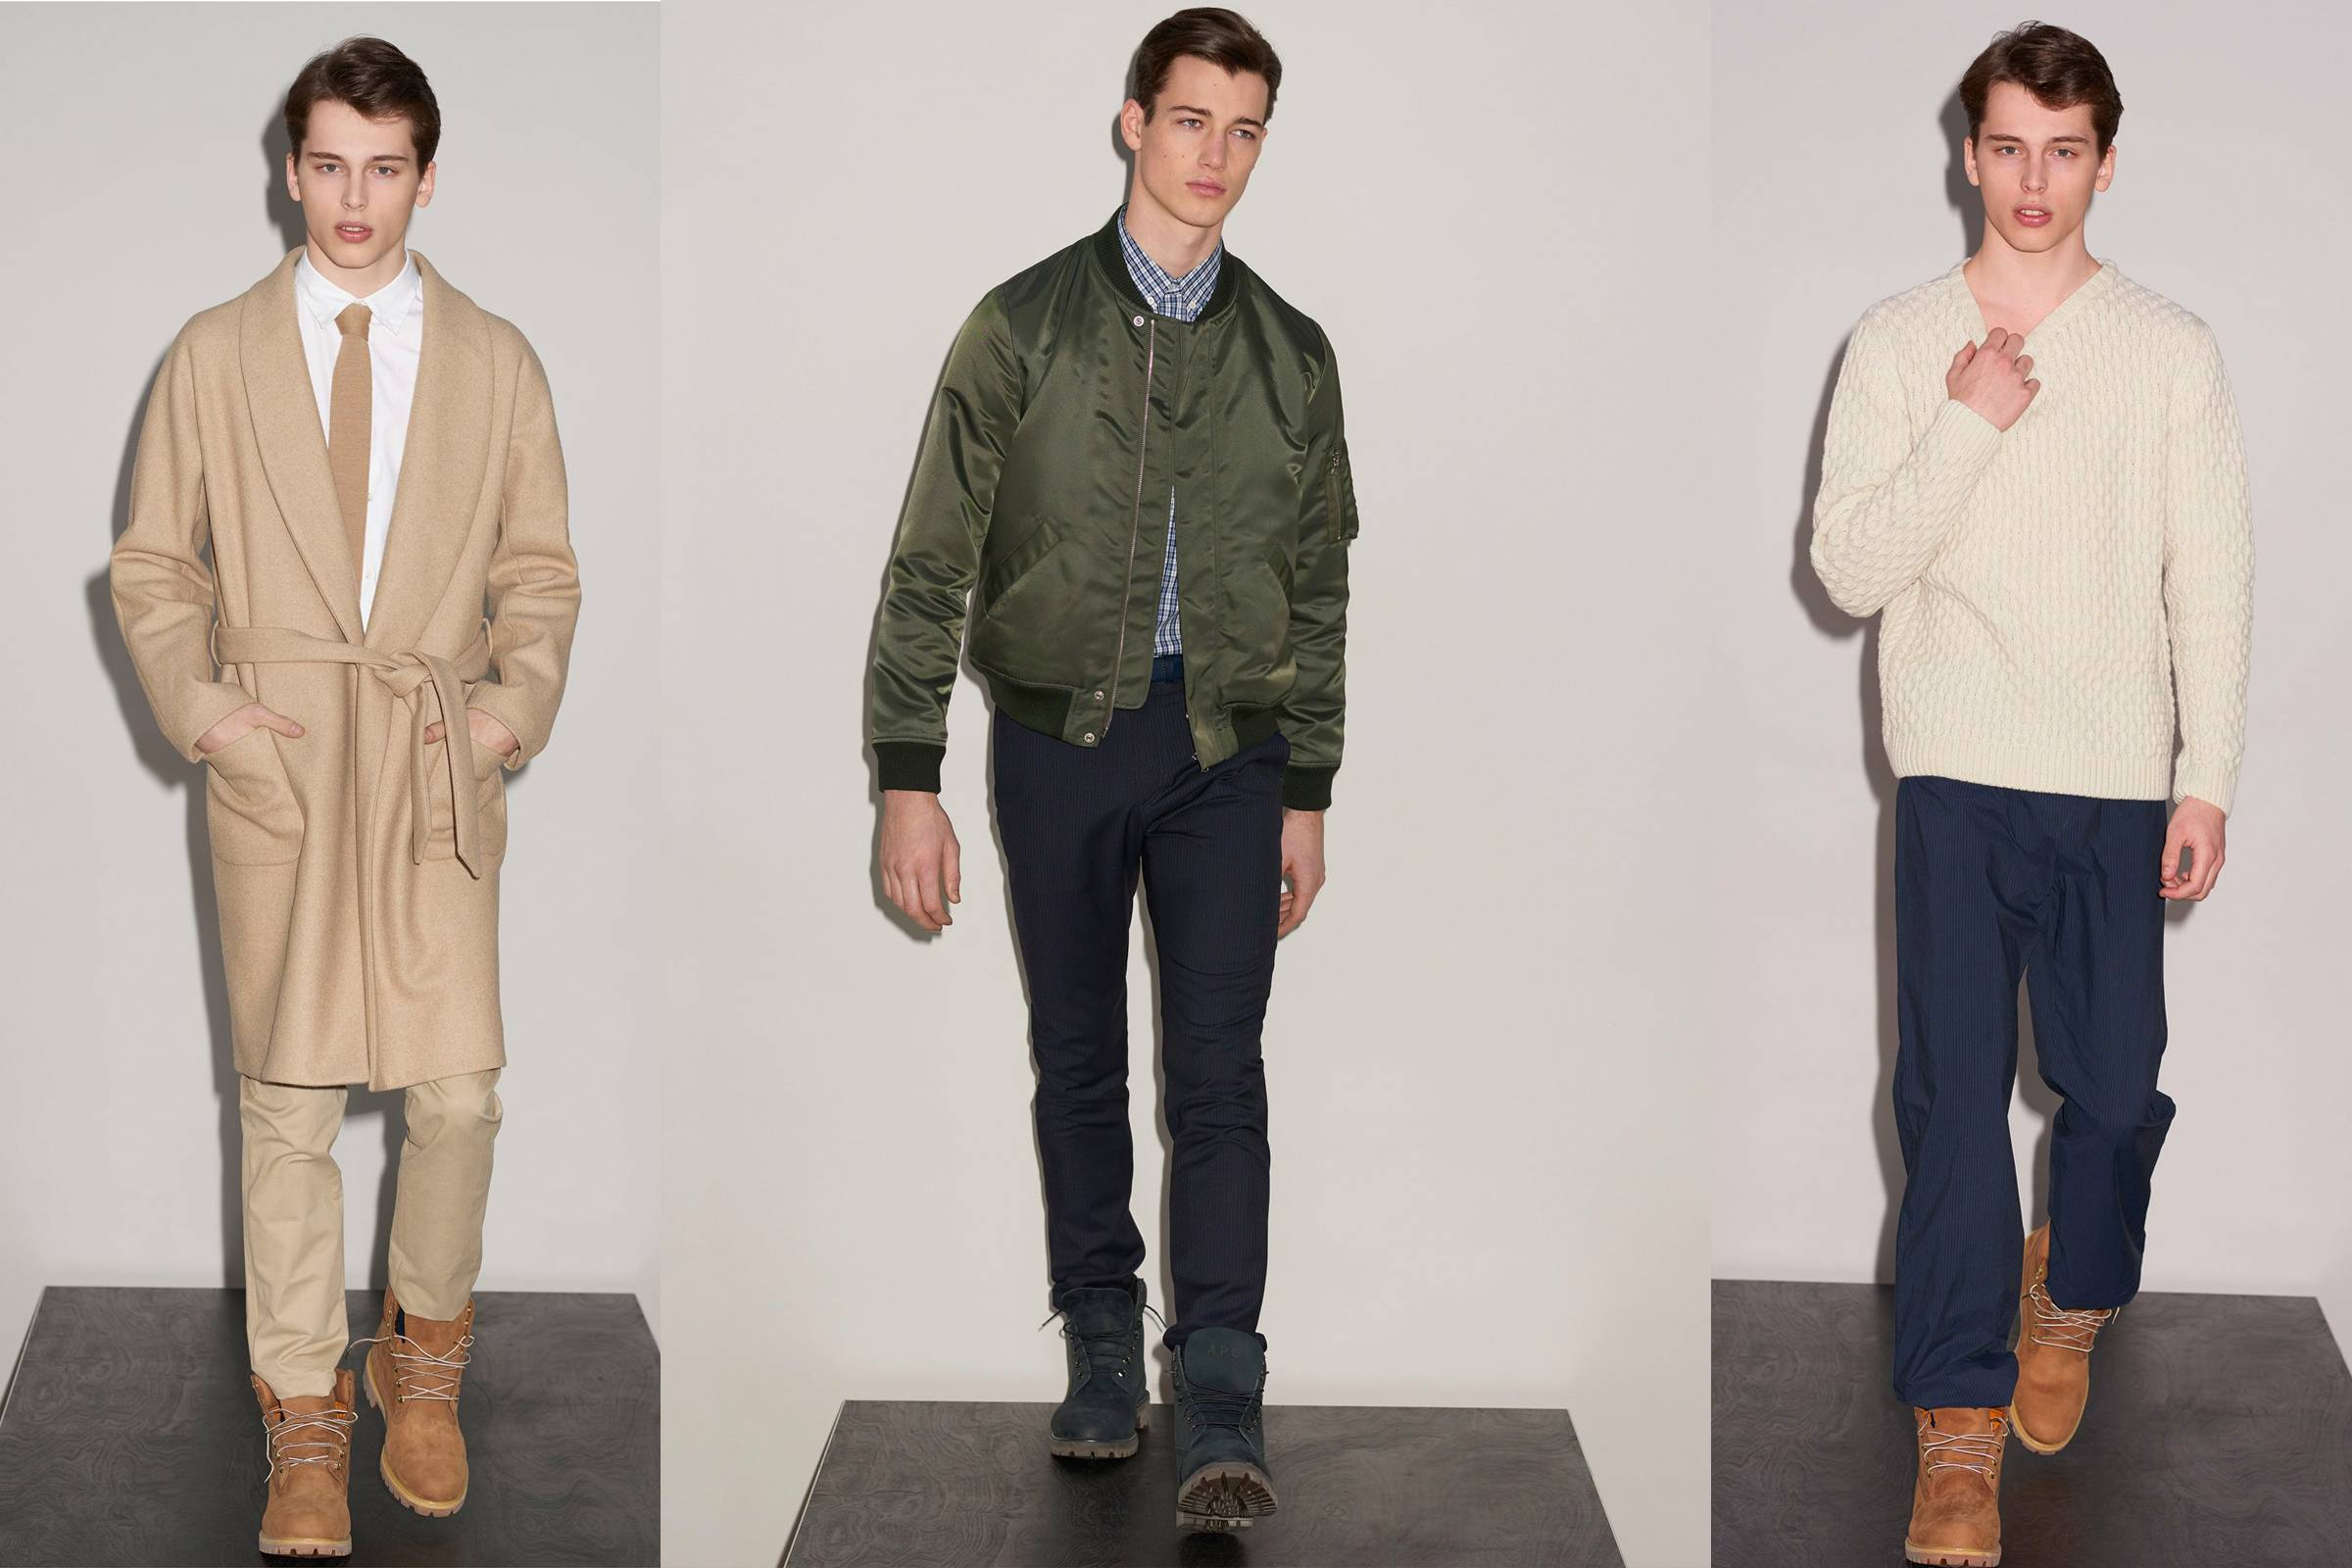 Looks from A.P.C.'s controversial Fall/Winter 2015 collection, including the unproduced Timberland boots